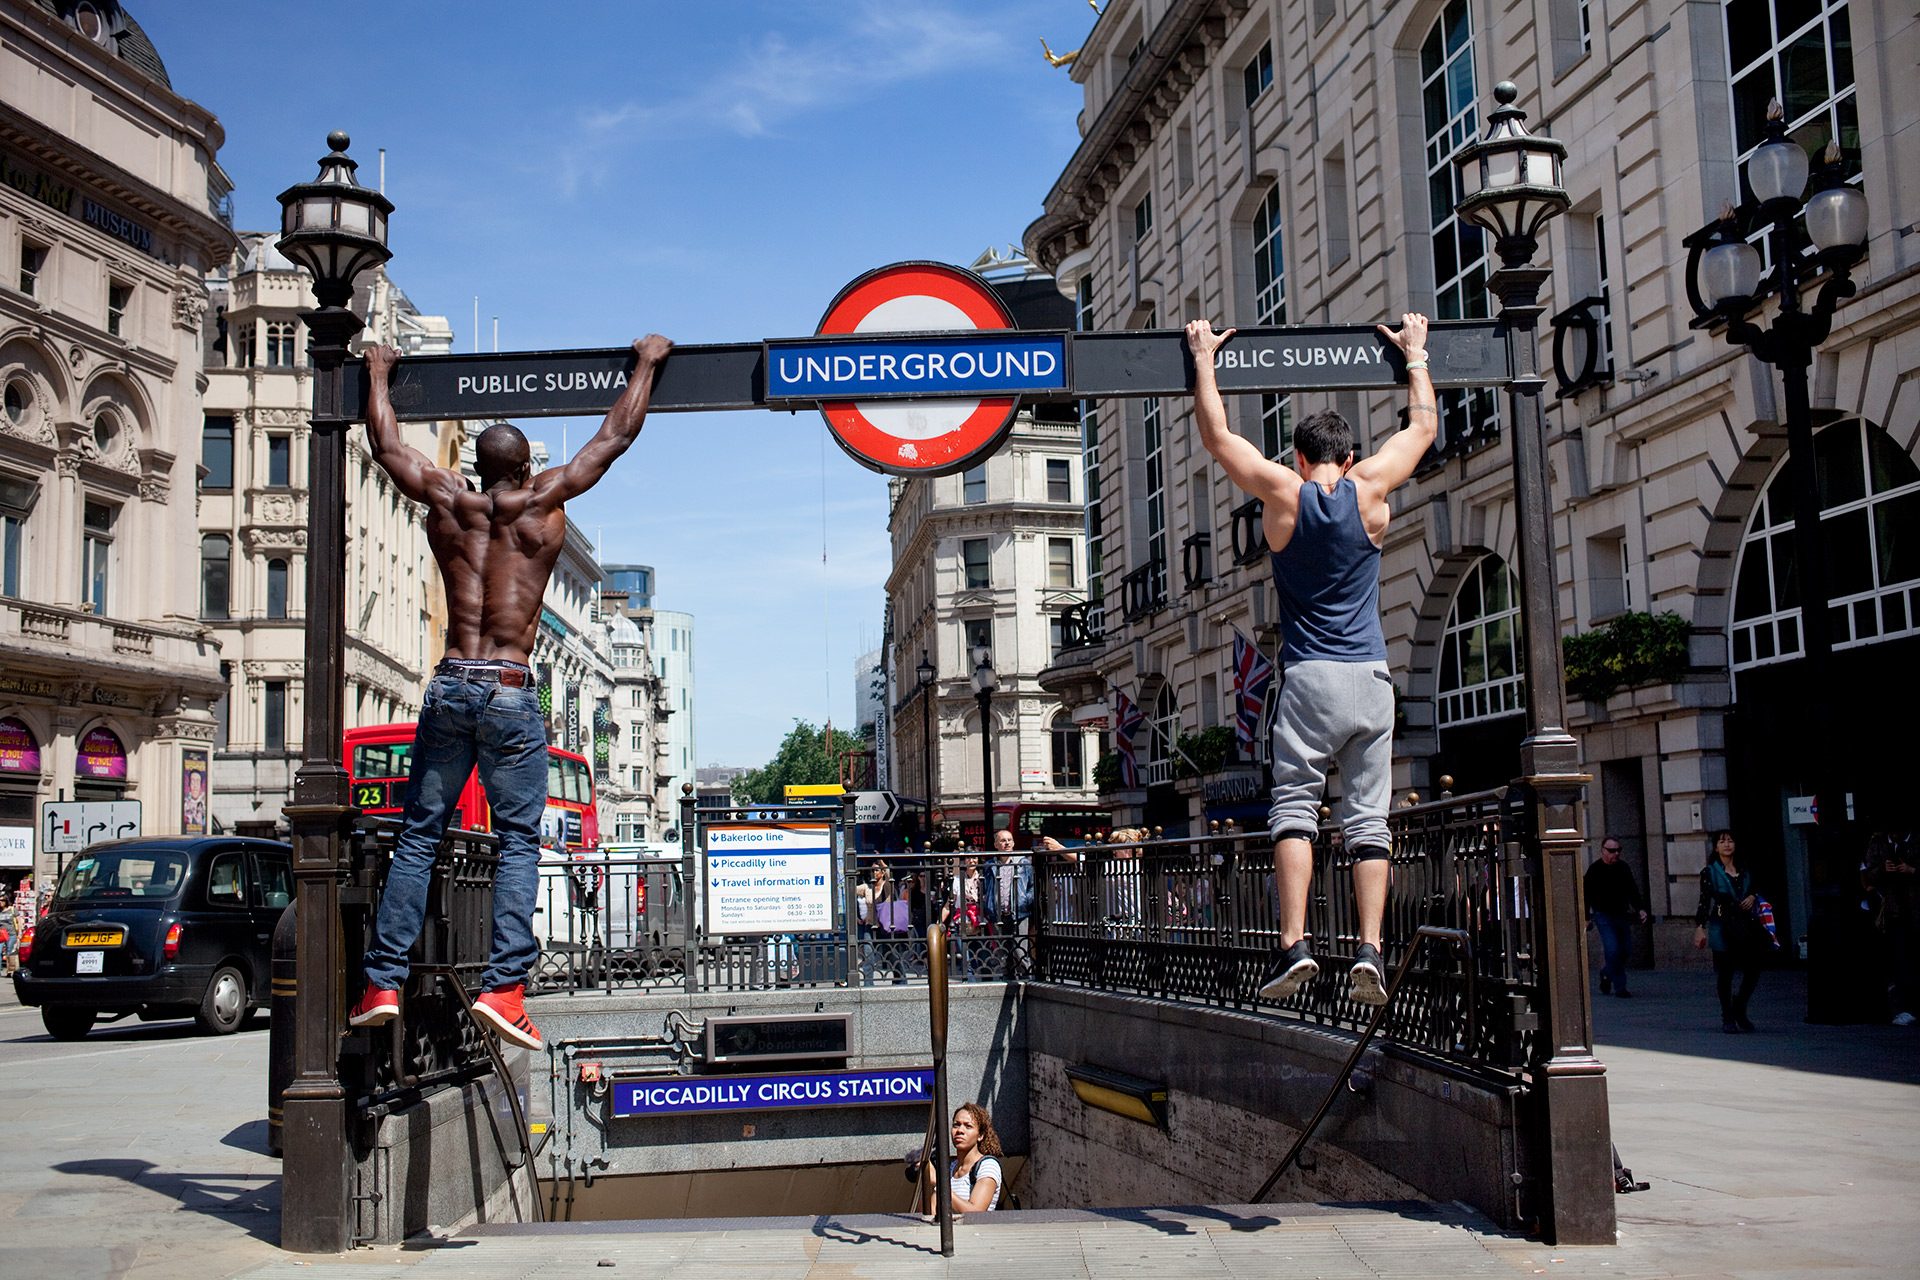 Piccadilly Circus project by Street Photographer Nick Turpin